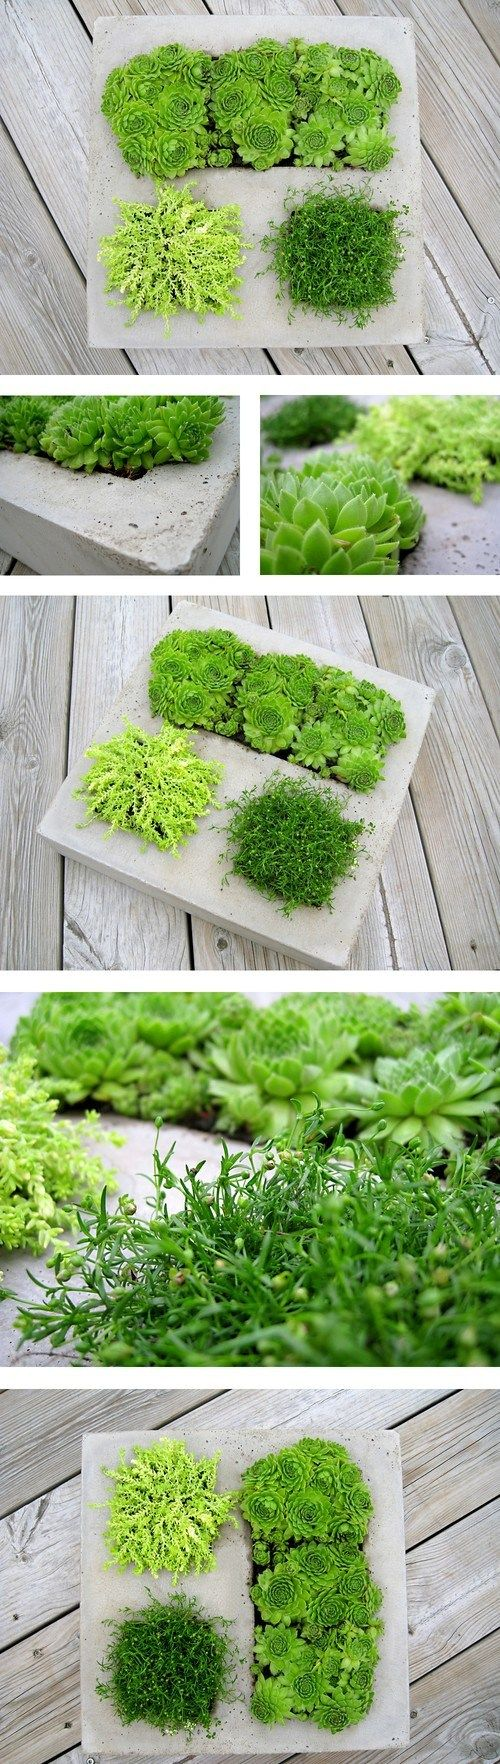 19 Beautiful DIY Cement Crafts To Add Diversity To Your Interior Decor-usefuldiyprojects (13)